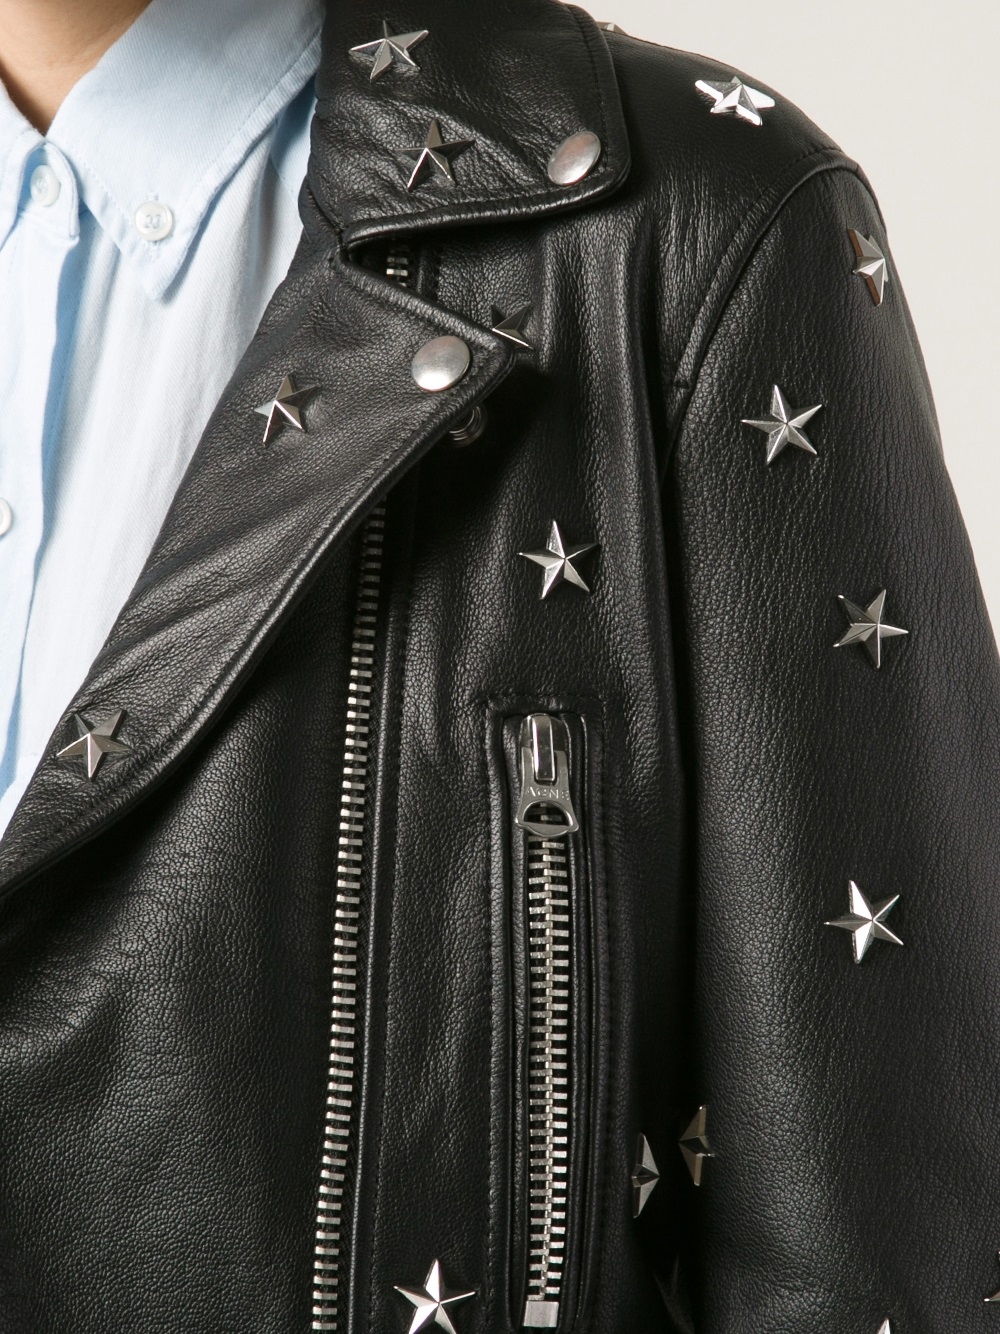 of floral tough embroidered view leather perfect jacket studded stud in black faux detail amount akira moto the